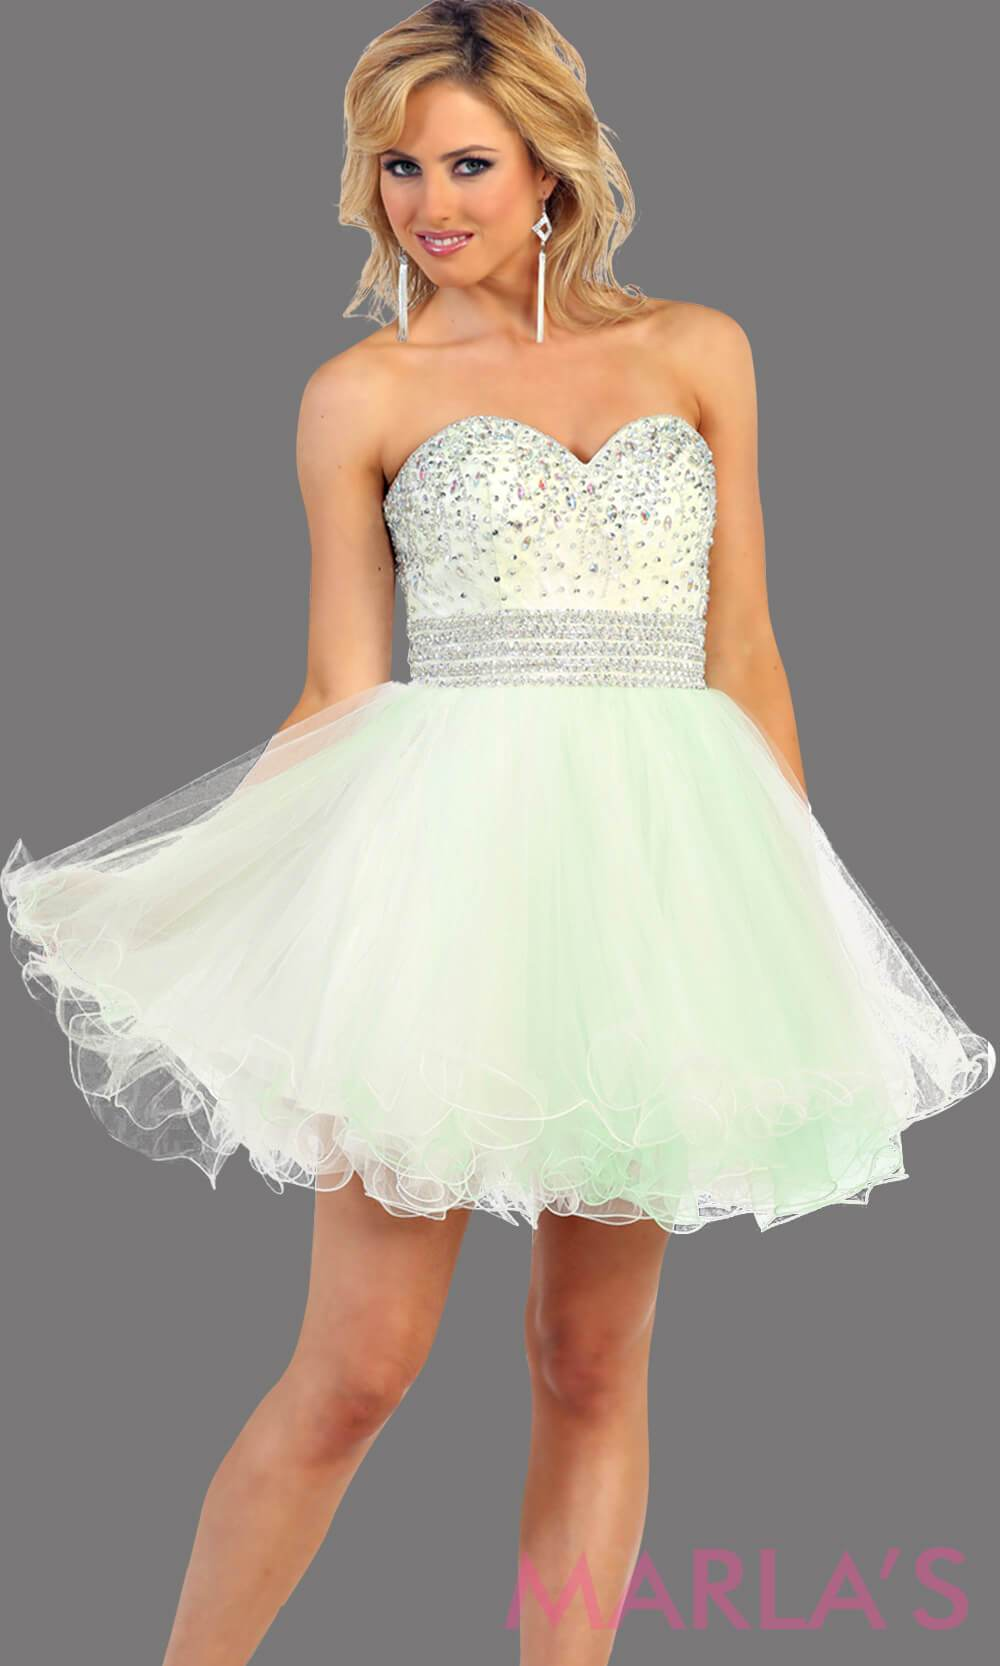 Short puffy white-mint dress with a beaded bodice feature a sweetheart neckline and empire waist that flow into layers of tulle. This light mint dress has a corset back and avail in plus size. Perfect for grade 8 graduation